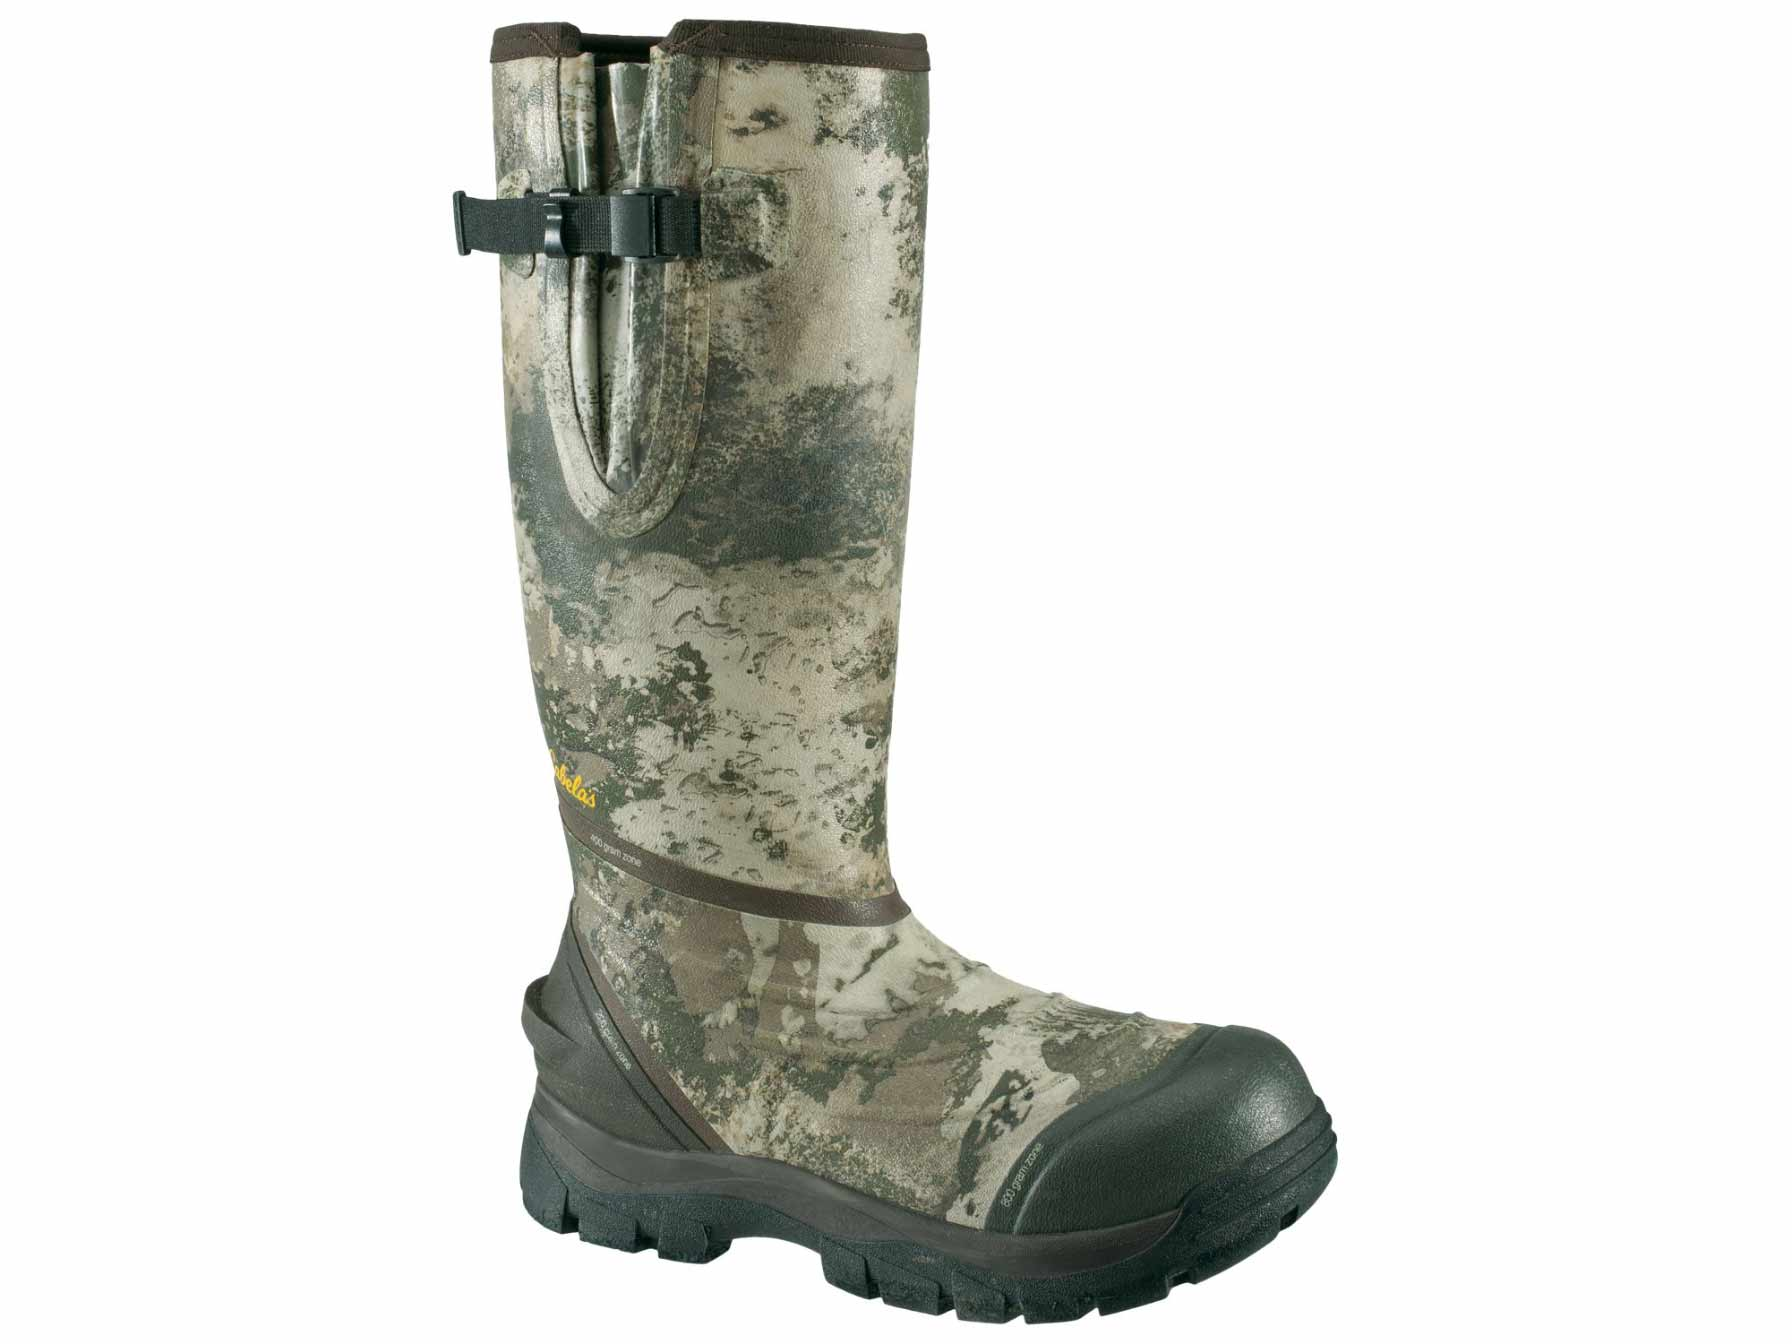 Cabela's Zoned Comfort Trac insulated rubber hunting boots